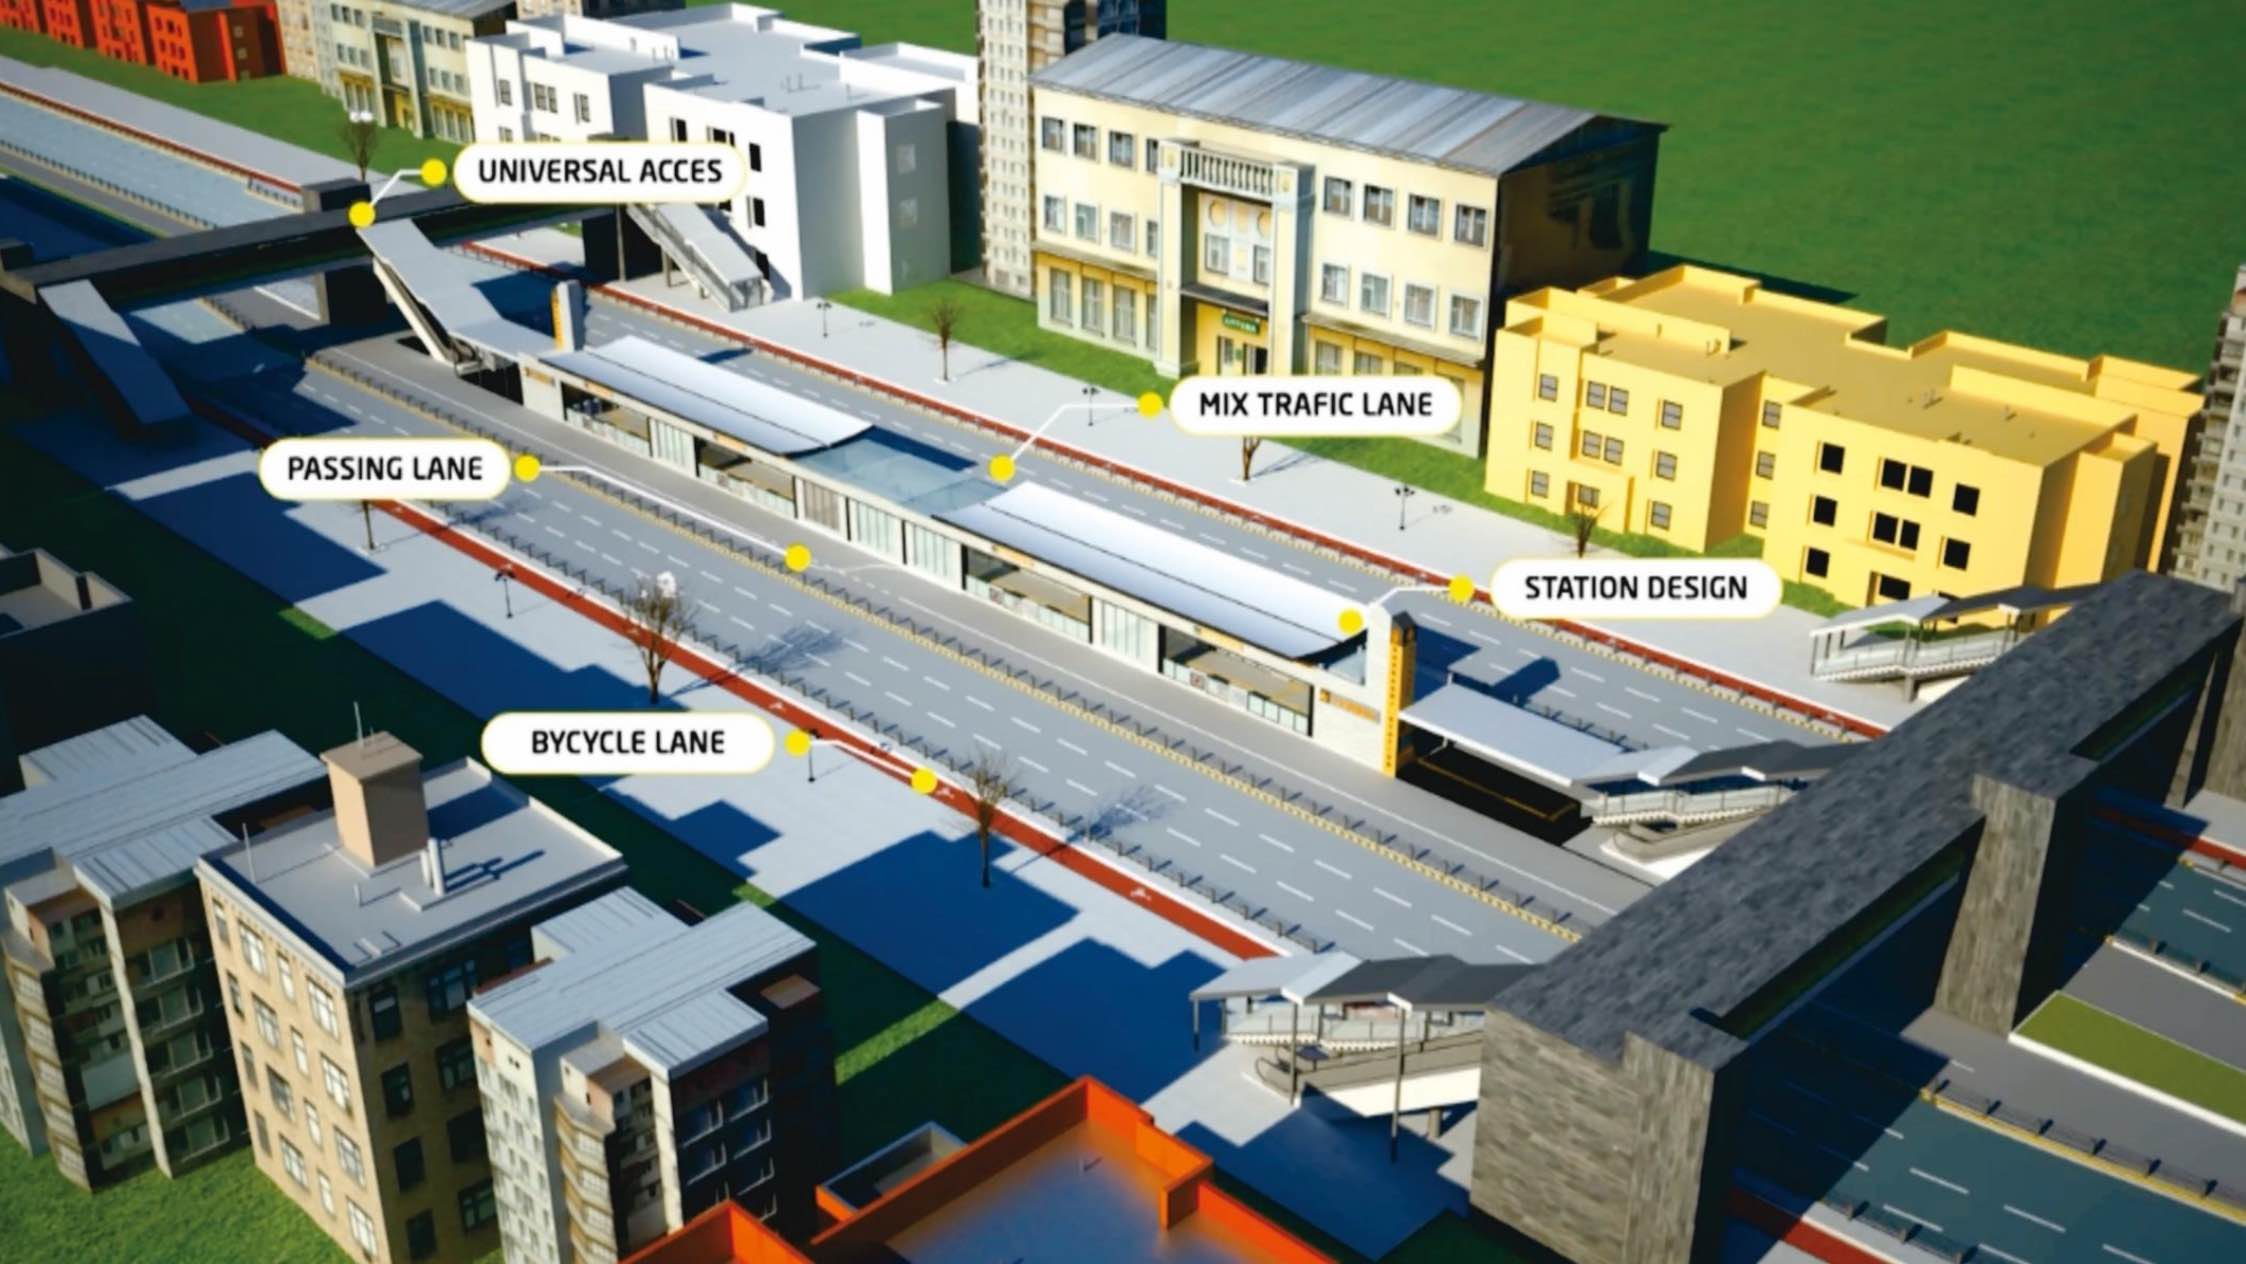 BRT Station Design Components